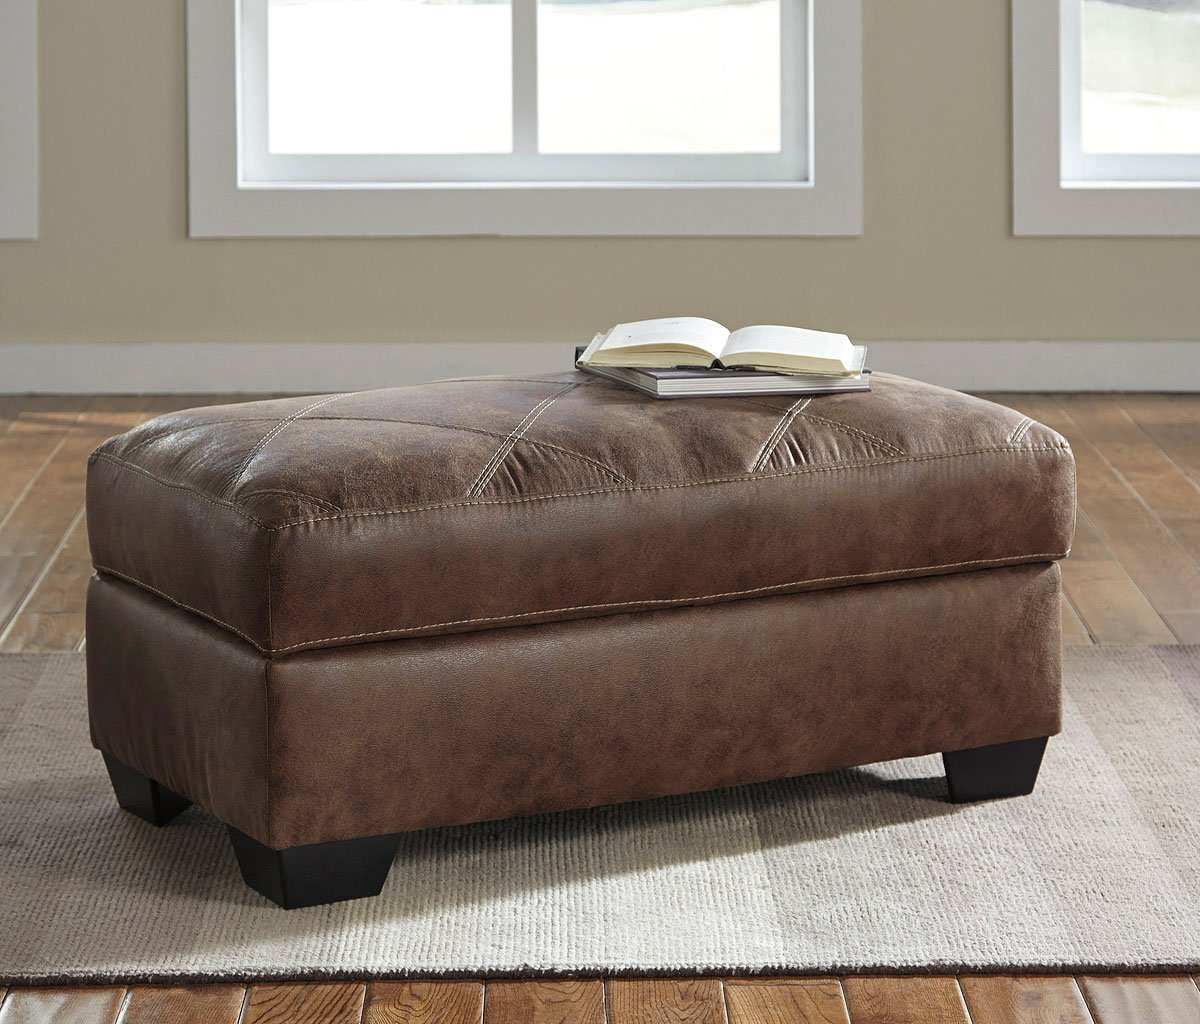 Surprising Tanacra Tweed Storage Ottoman Alphanode Cool Chair Designs And Ideas Alphanodeonline